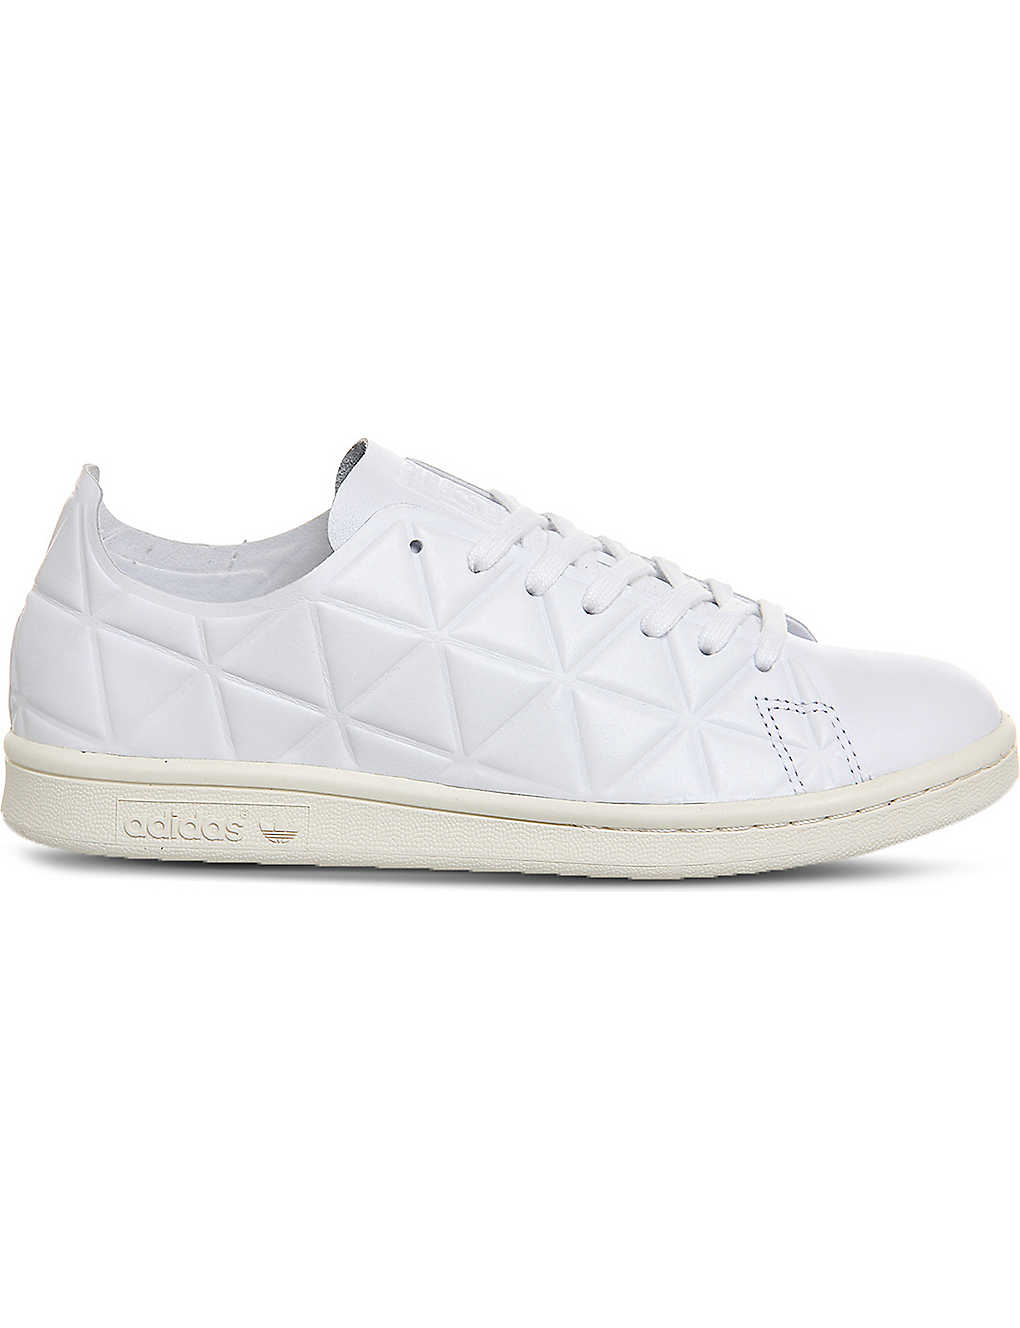 buy popular 4ace9 0004a ADIDAS Polygon pack stan smith geometric embossed leather trainers